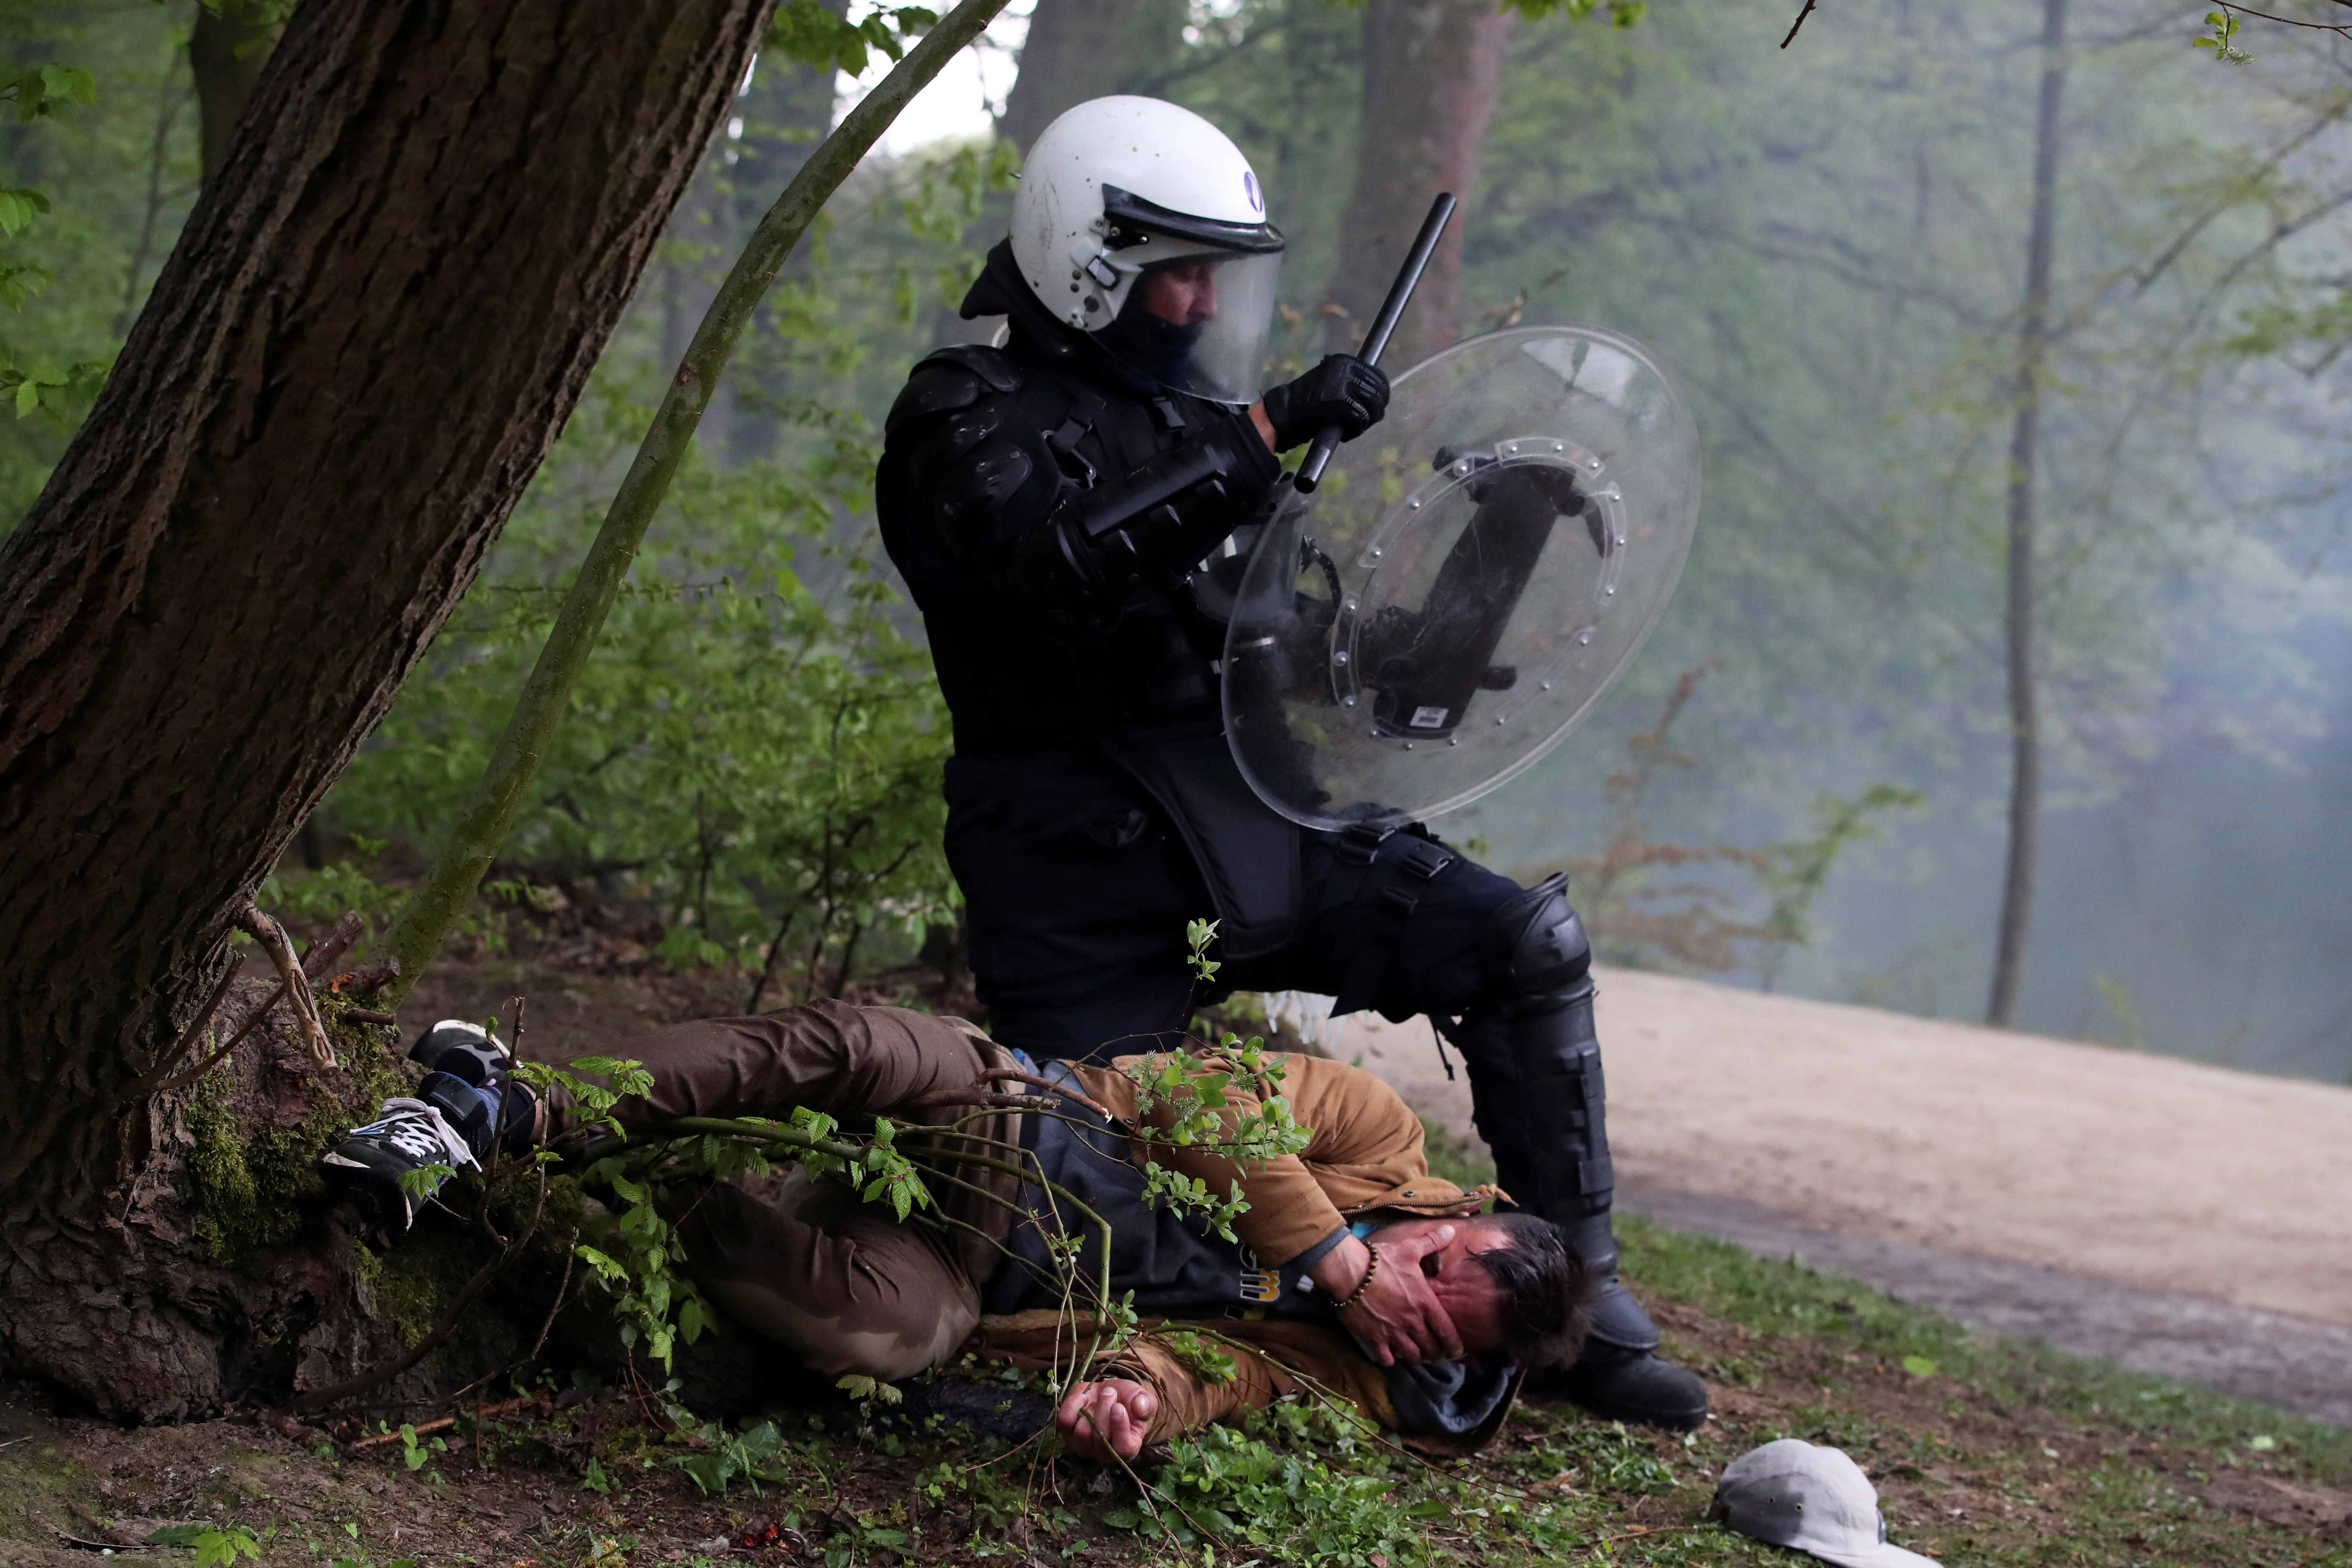 A police officer detains a man during clashes as people gather at the Bois de la Cambre/Ter Kamerenbos park for a party called